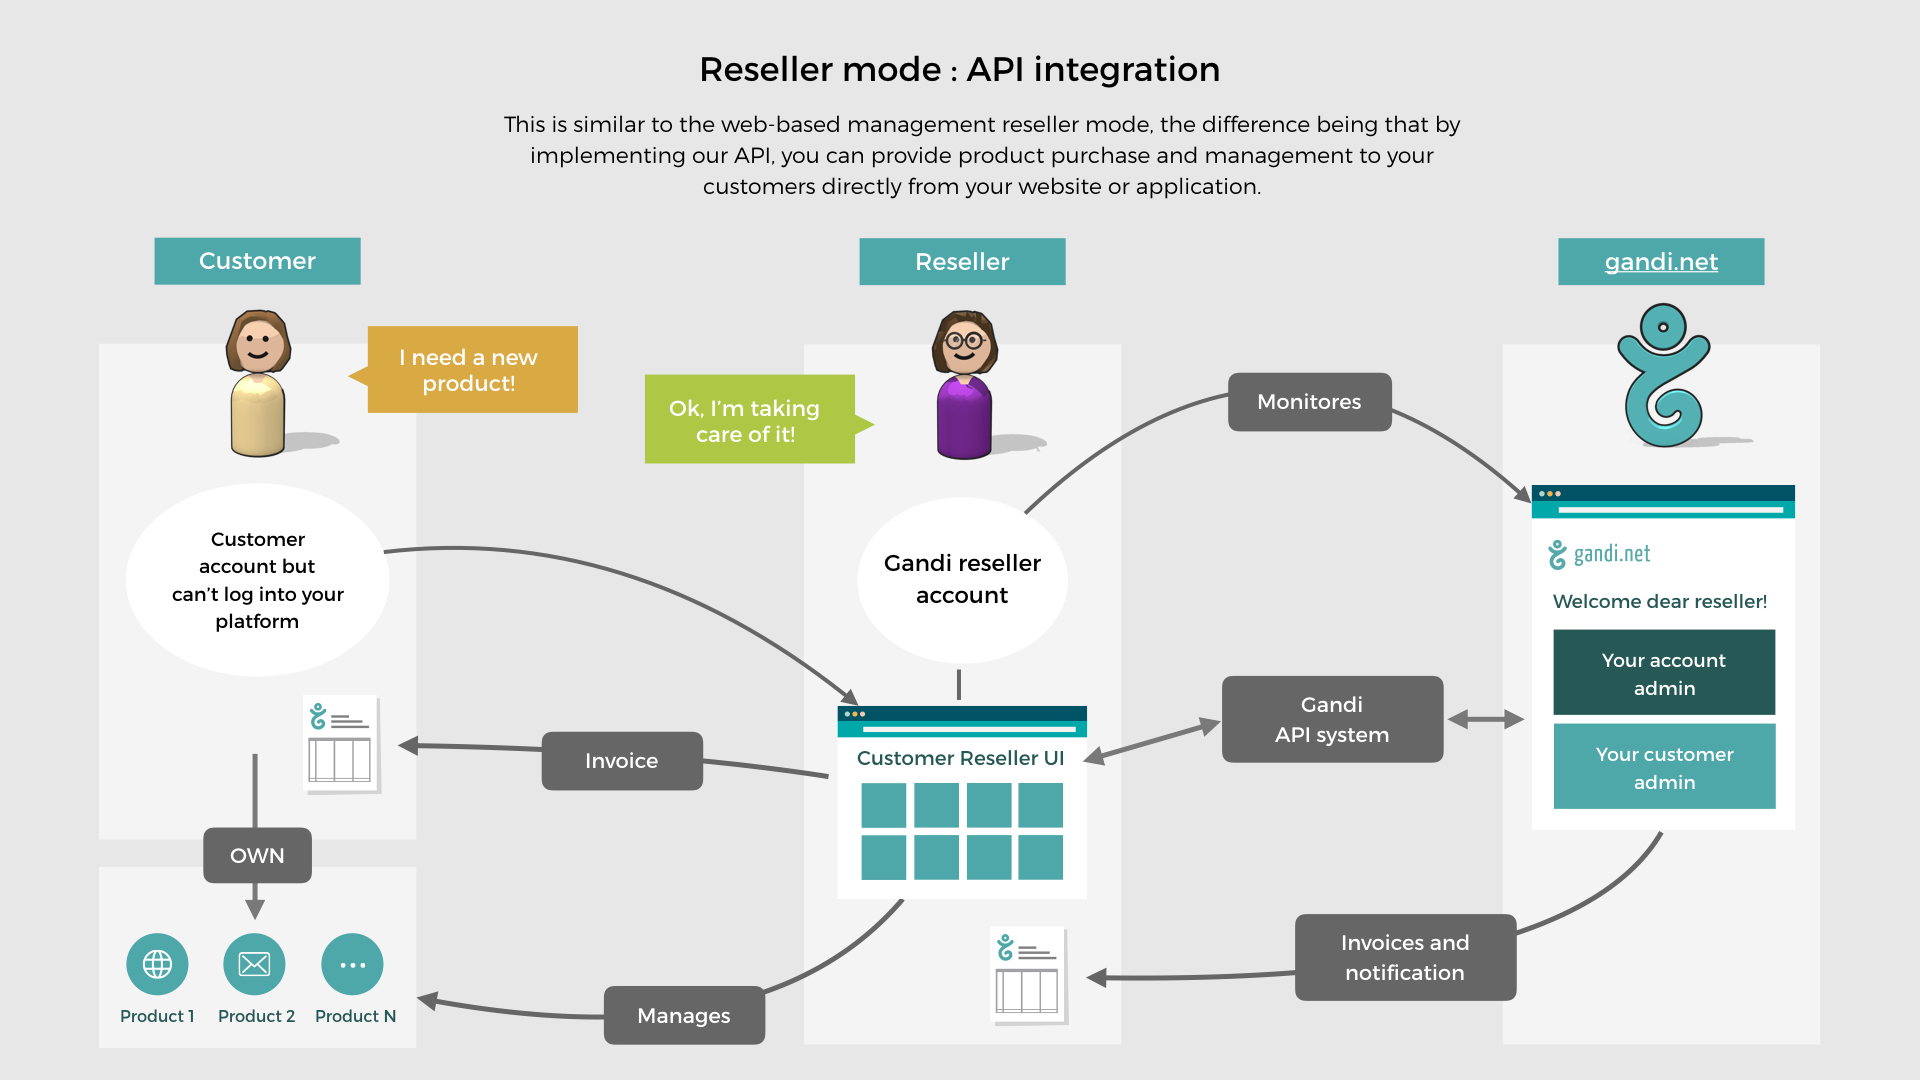 Chart displaying how the customer interacts with the reseller's platform using Gandi API, and the reseller handles all direct interaction with Gandi.